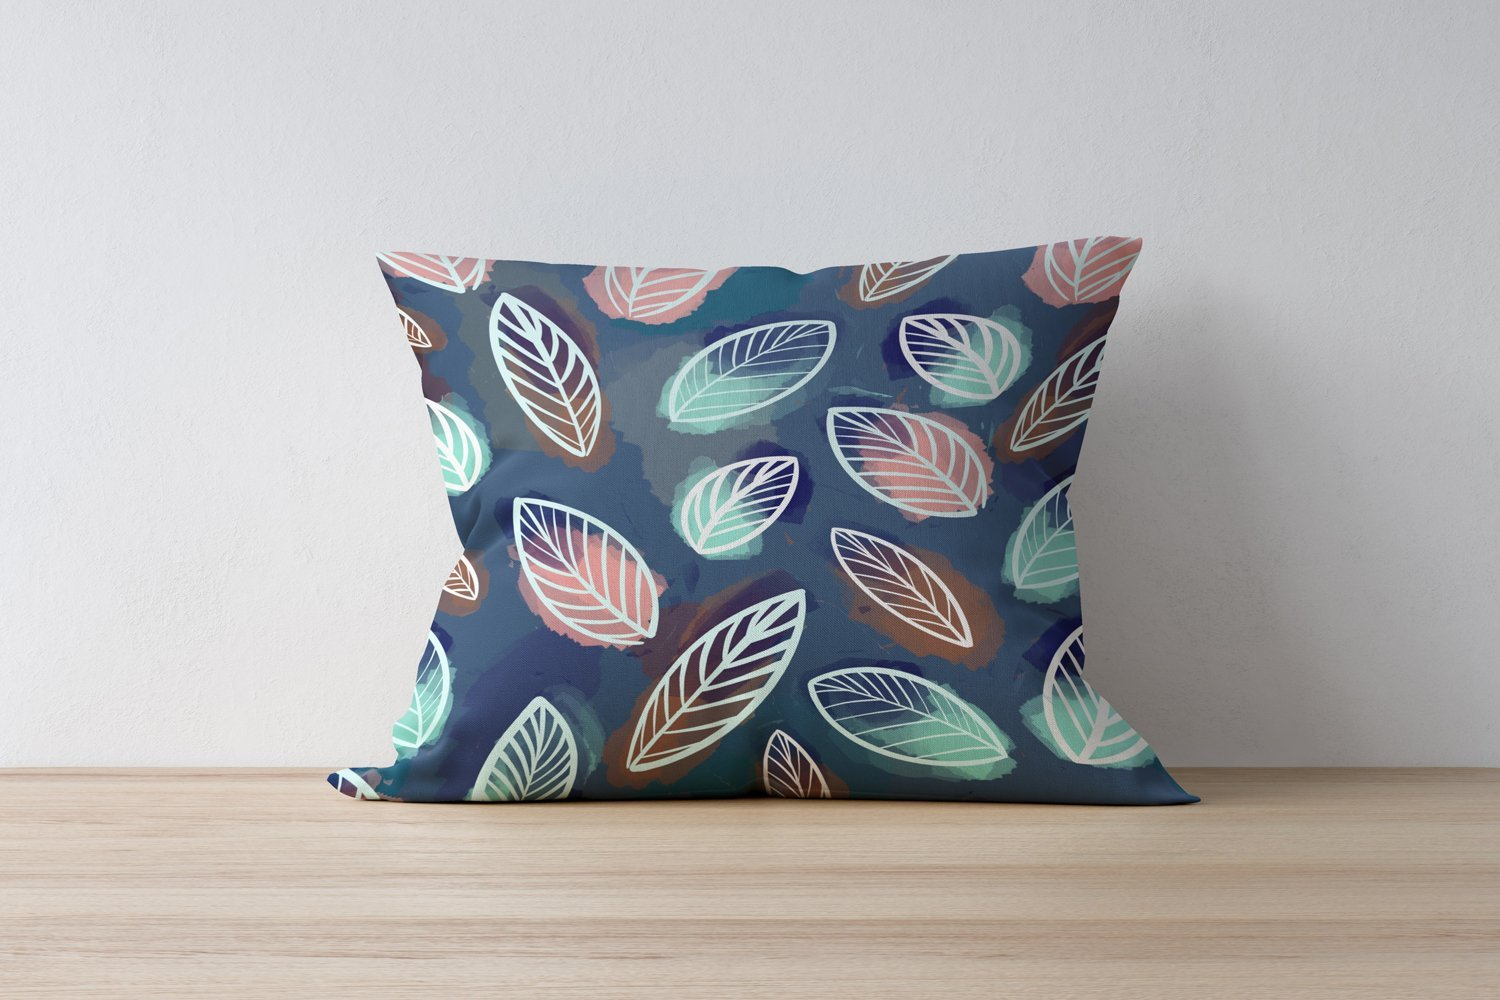 Colorful pillow with leaves.